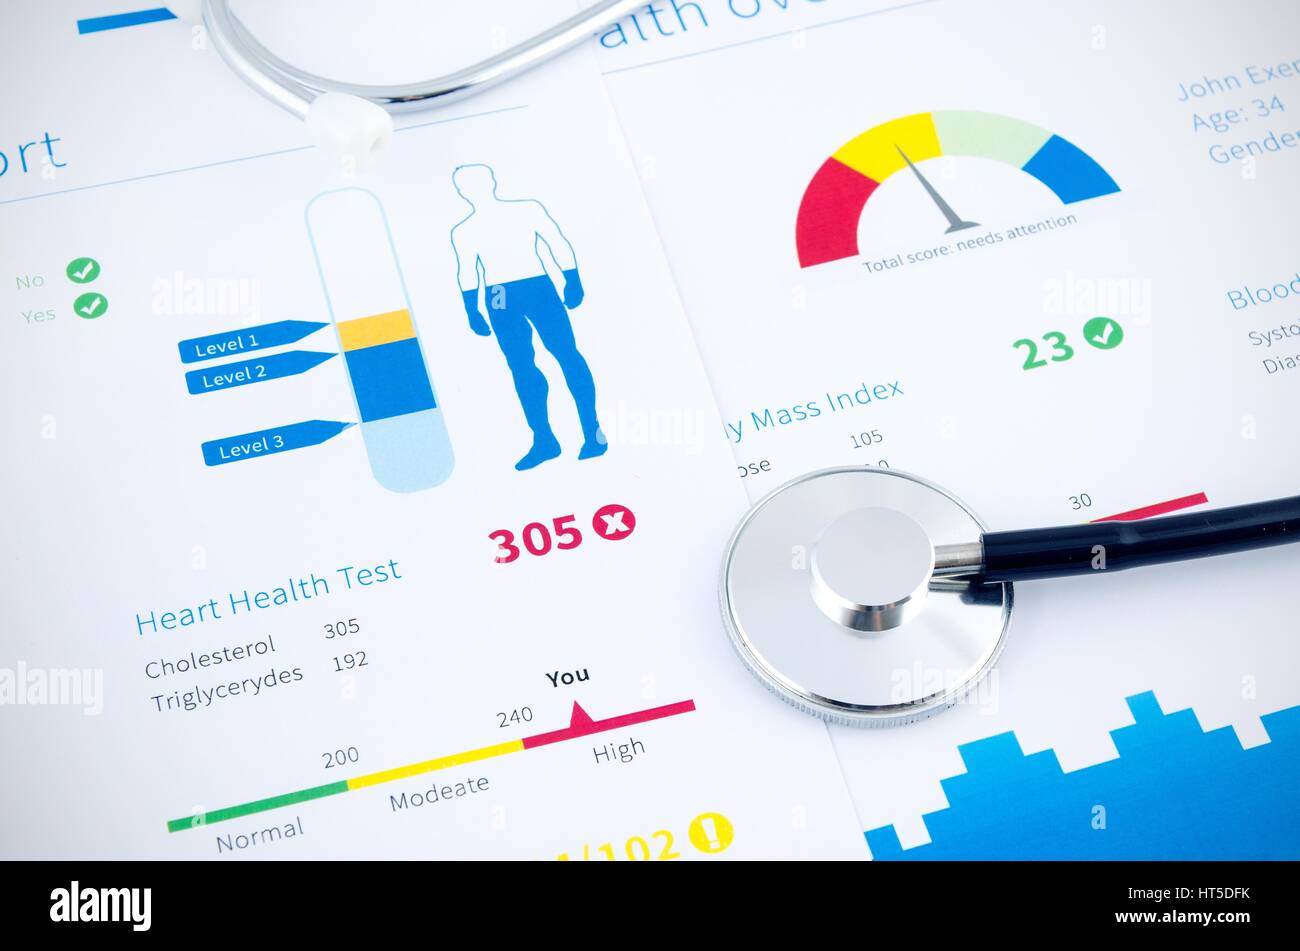 Health condition score report. Stethoscope on medical background. Stock Photo